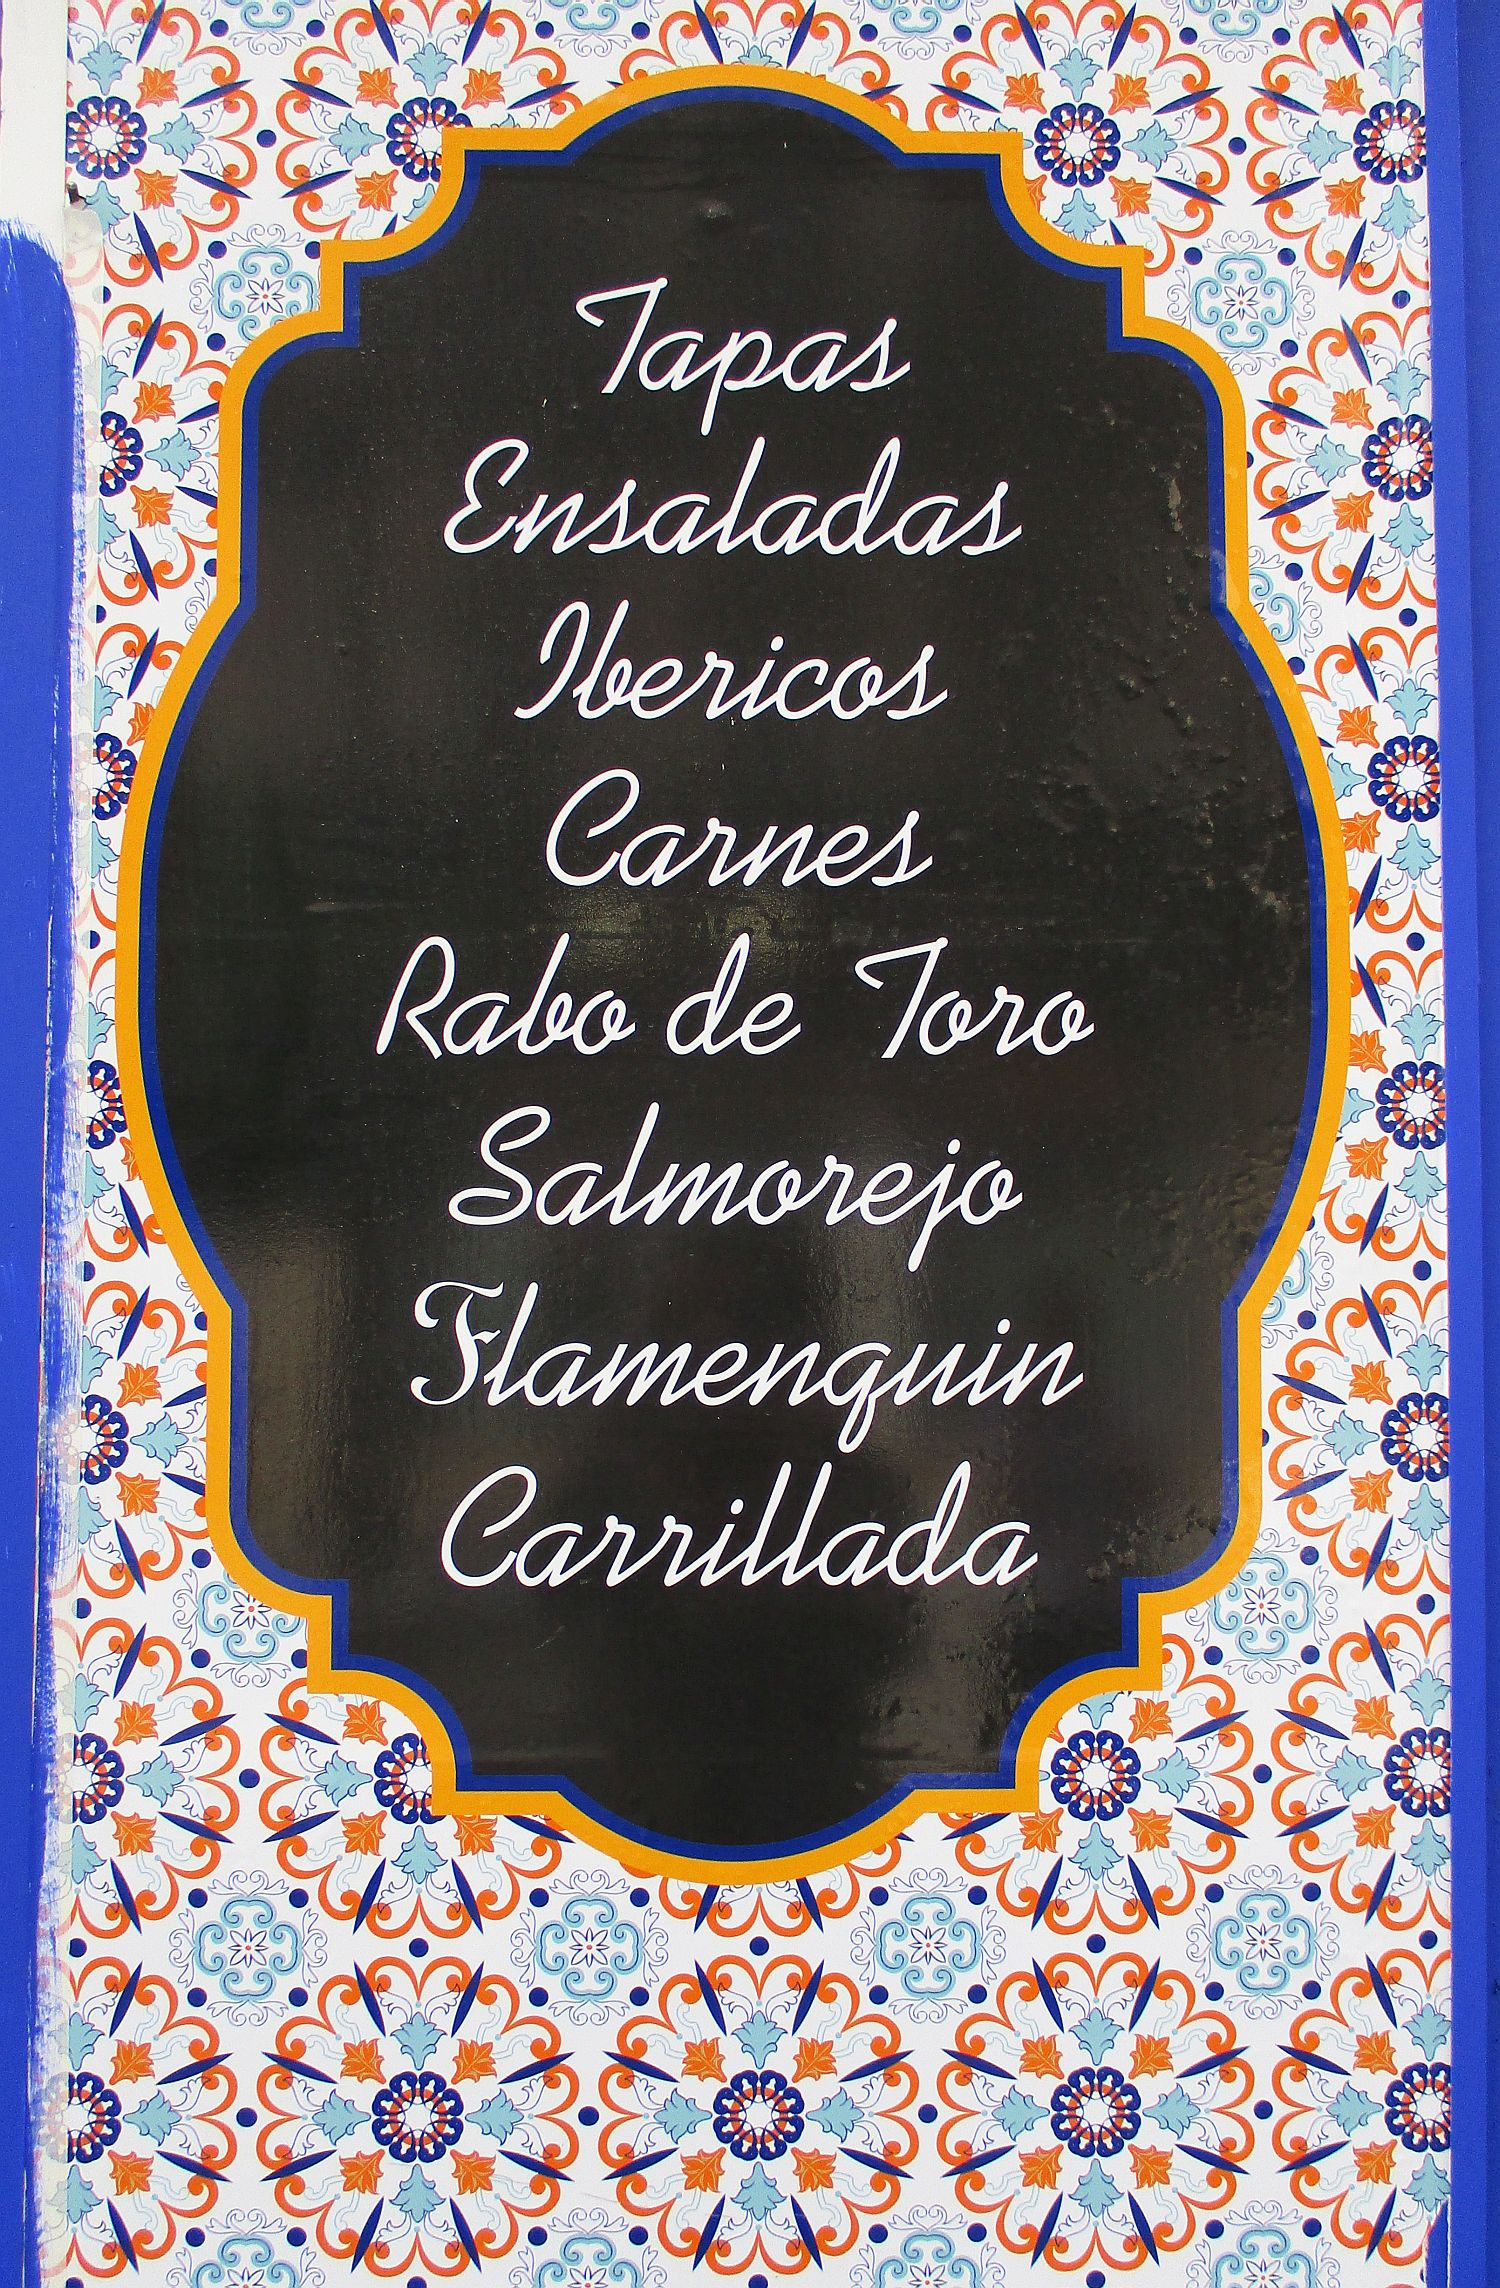 spalivingblig_one day in cordoba (13)